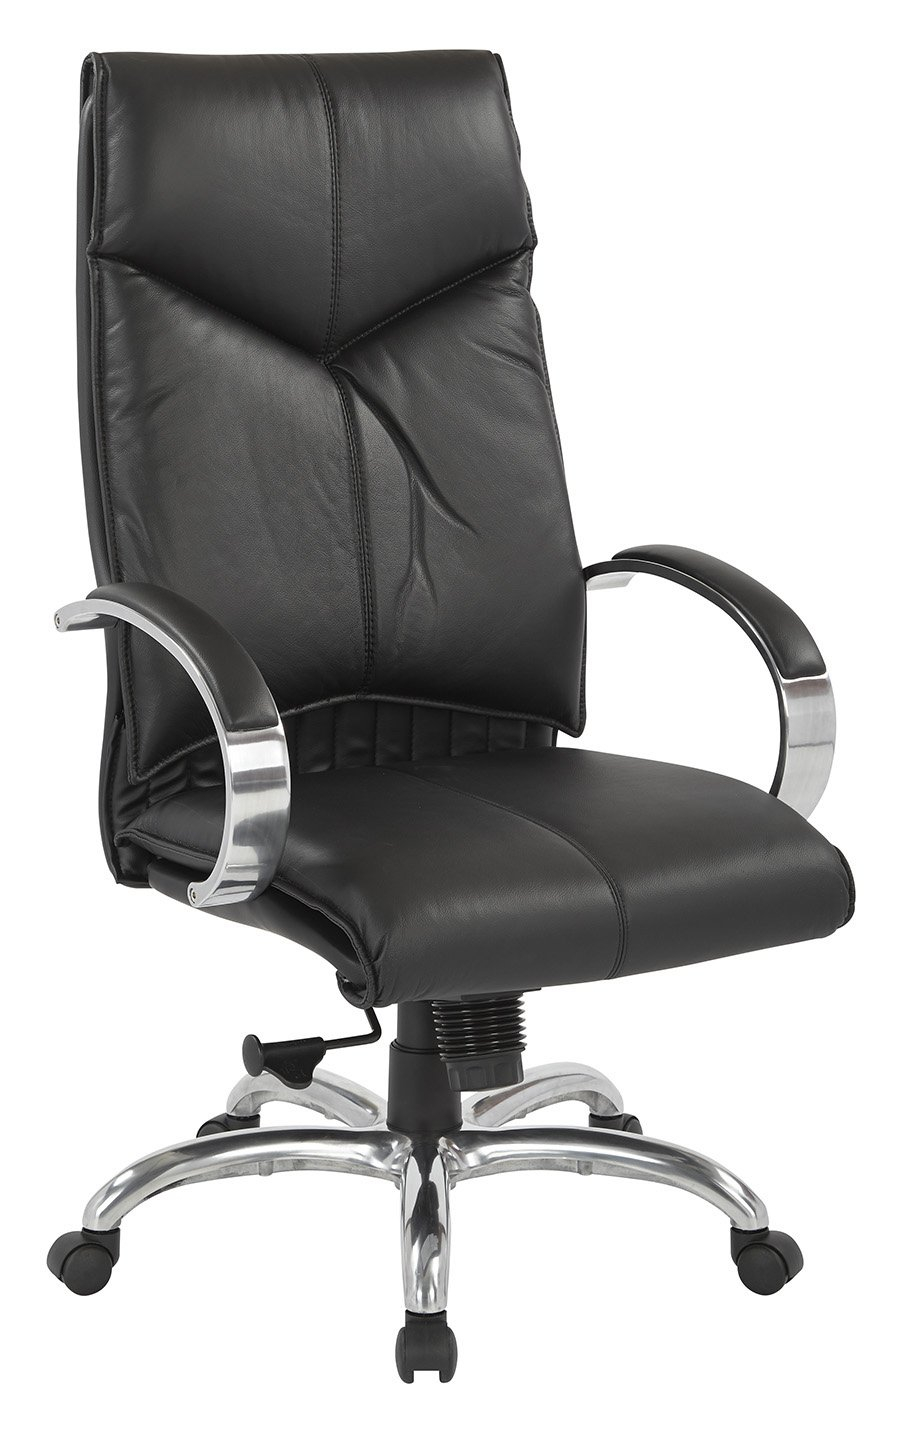 Top Grain Black Leather High Back Swivel Chair With Chrome Base Regarding Leather Black Swivel Chairs (Image 17 of 20)